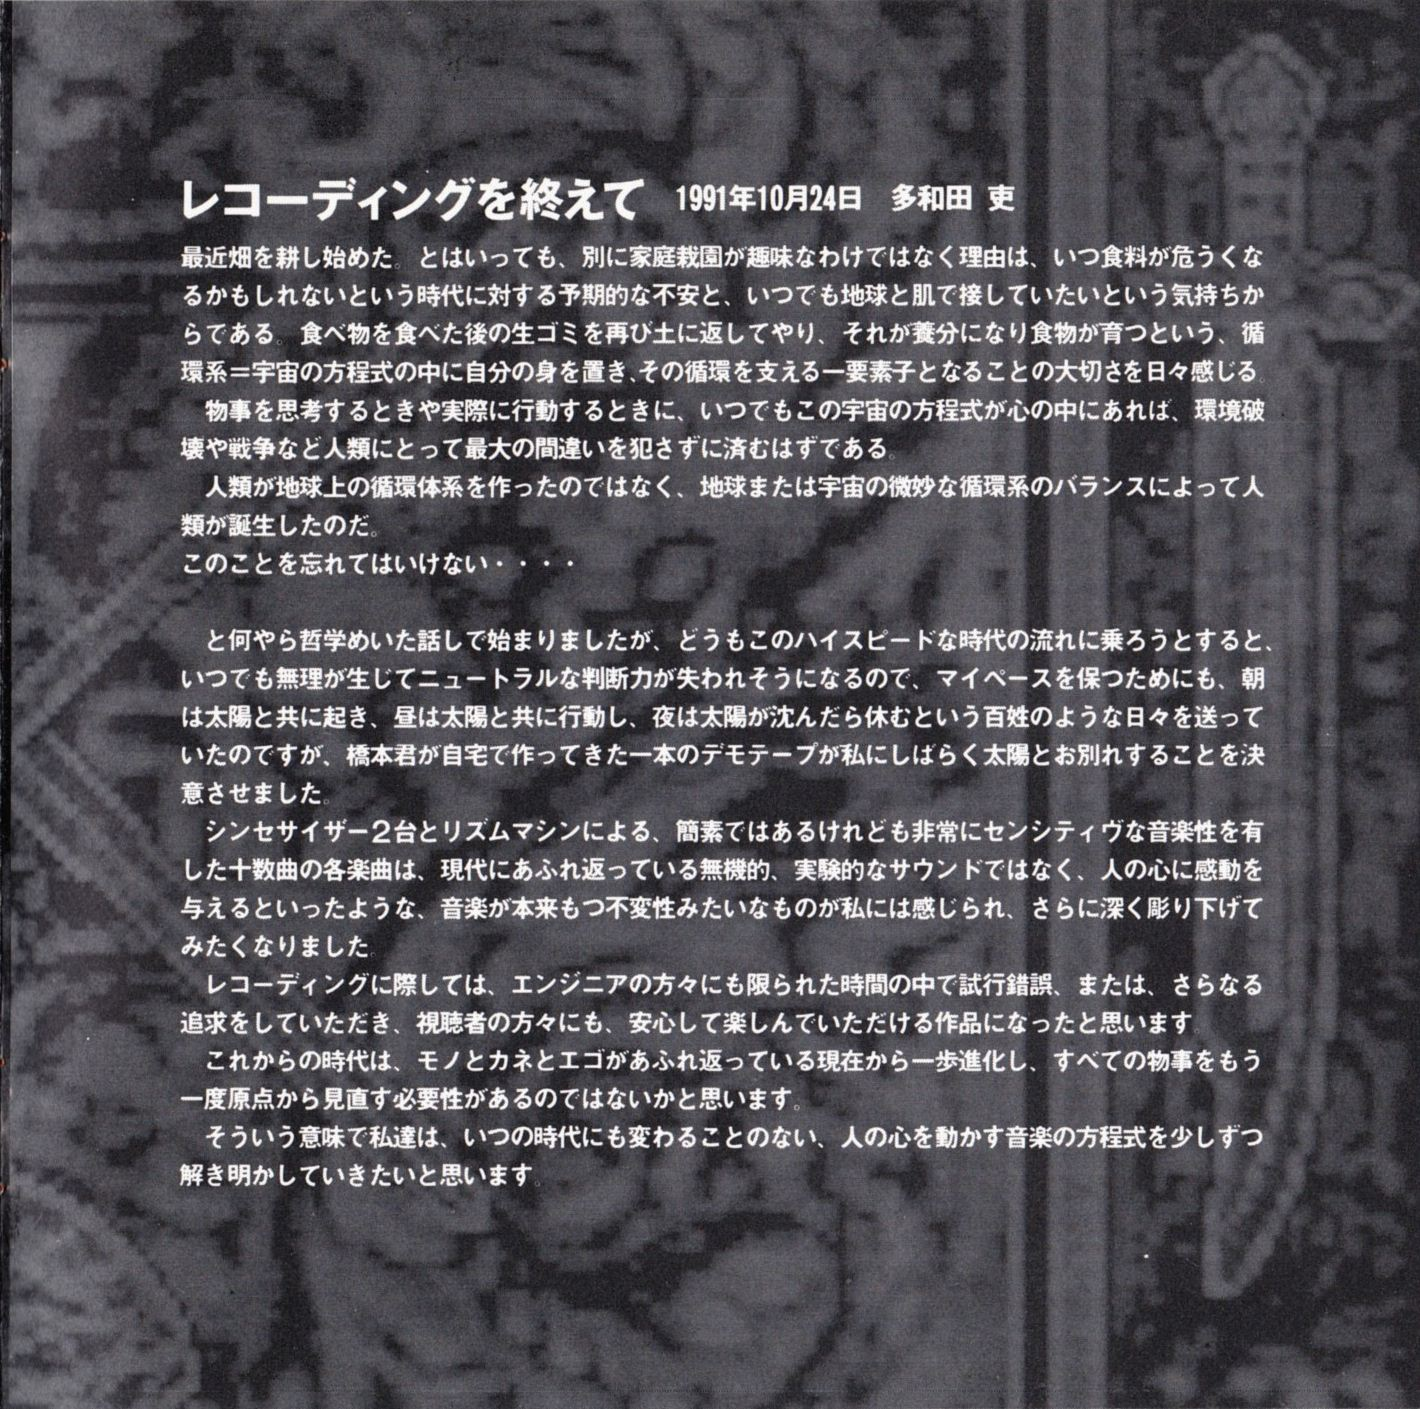 Audio CD - Super Dungeon Master - JP - Booklet - Page 009 - Scan